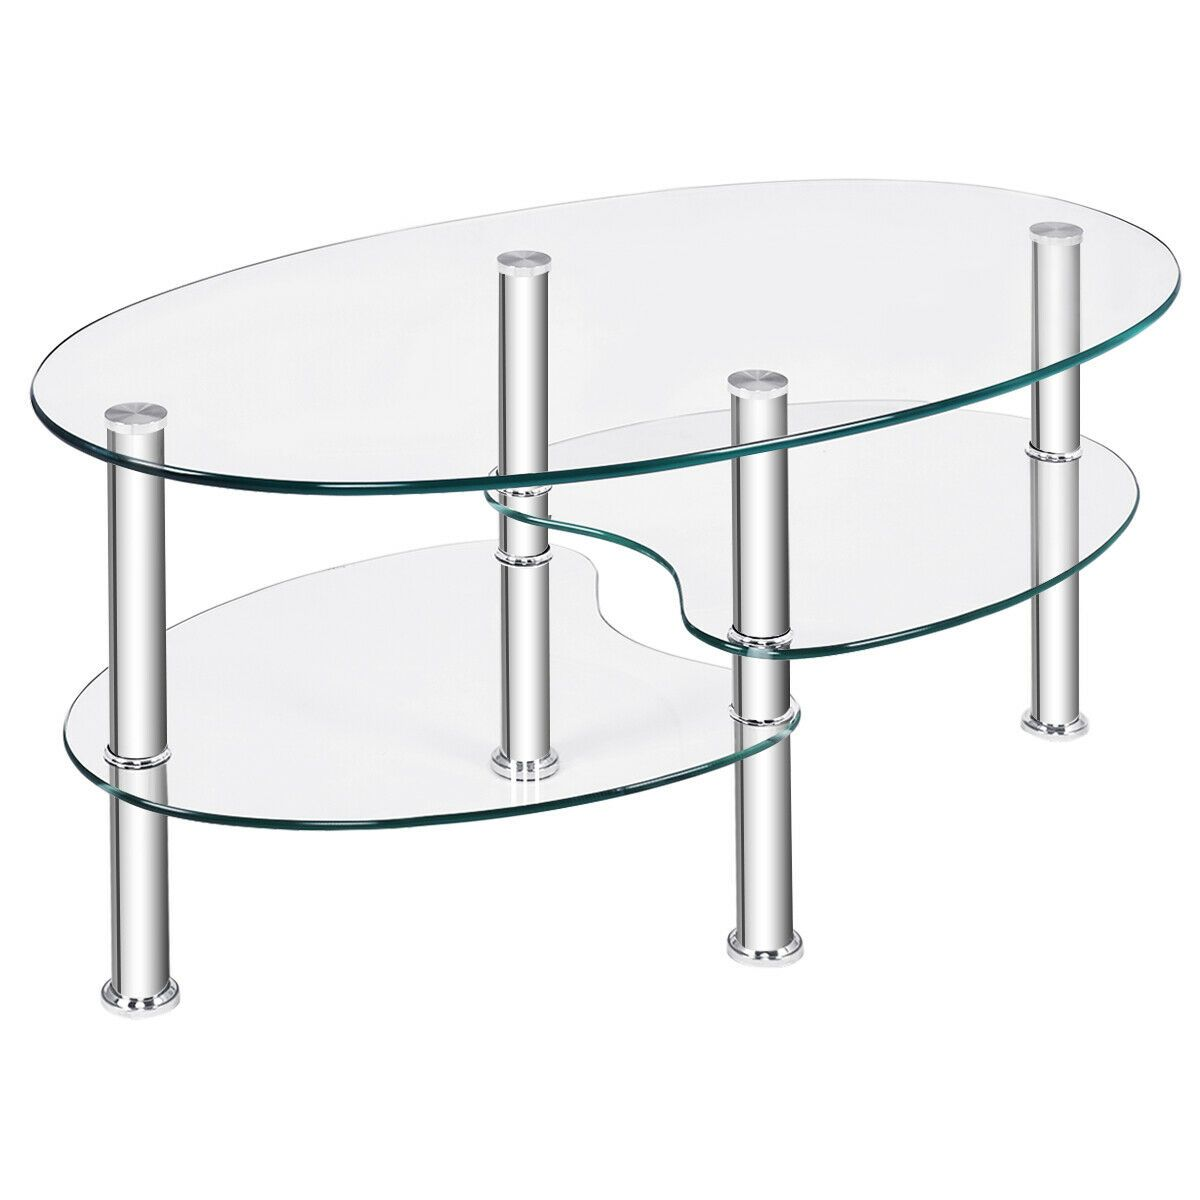 Tempered Glass Oval Side Coffee Table Shelf Chrome Base Living Room Clear New Coffee Table Side Coffee Table Elegant Coffee Table [ 1200 x 1200 Pixel ]